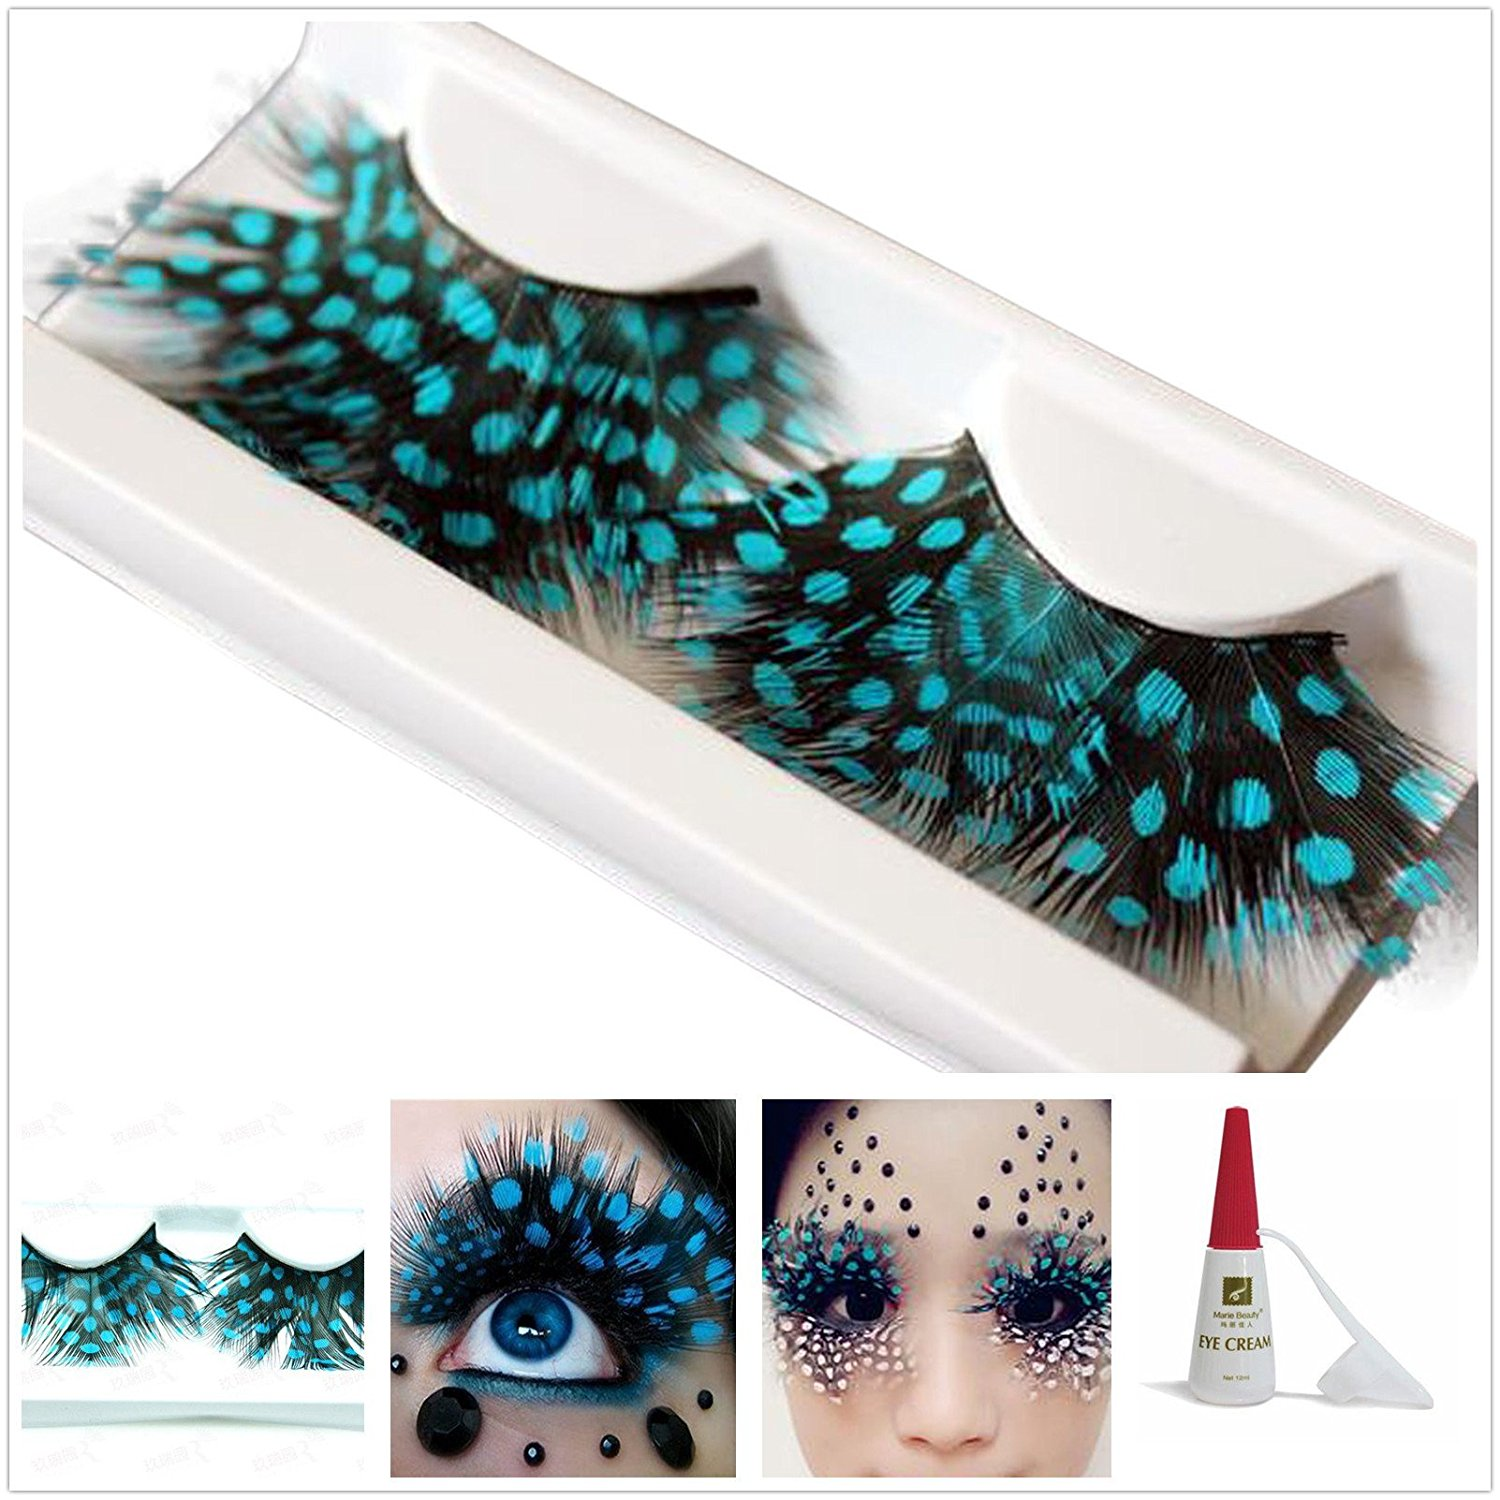 1d93f3857f5 Get Quotations · Beauty II Girl Fancy Dress Dance Party Makeup Feather  False Eyelashes Eye Lashes Polka Dot Thick